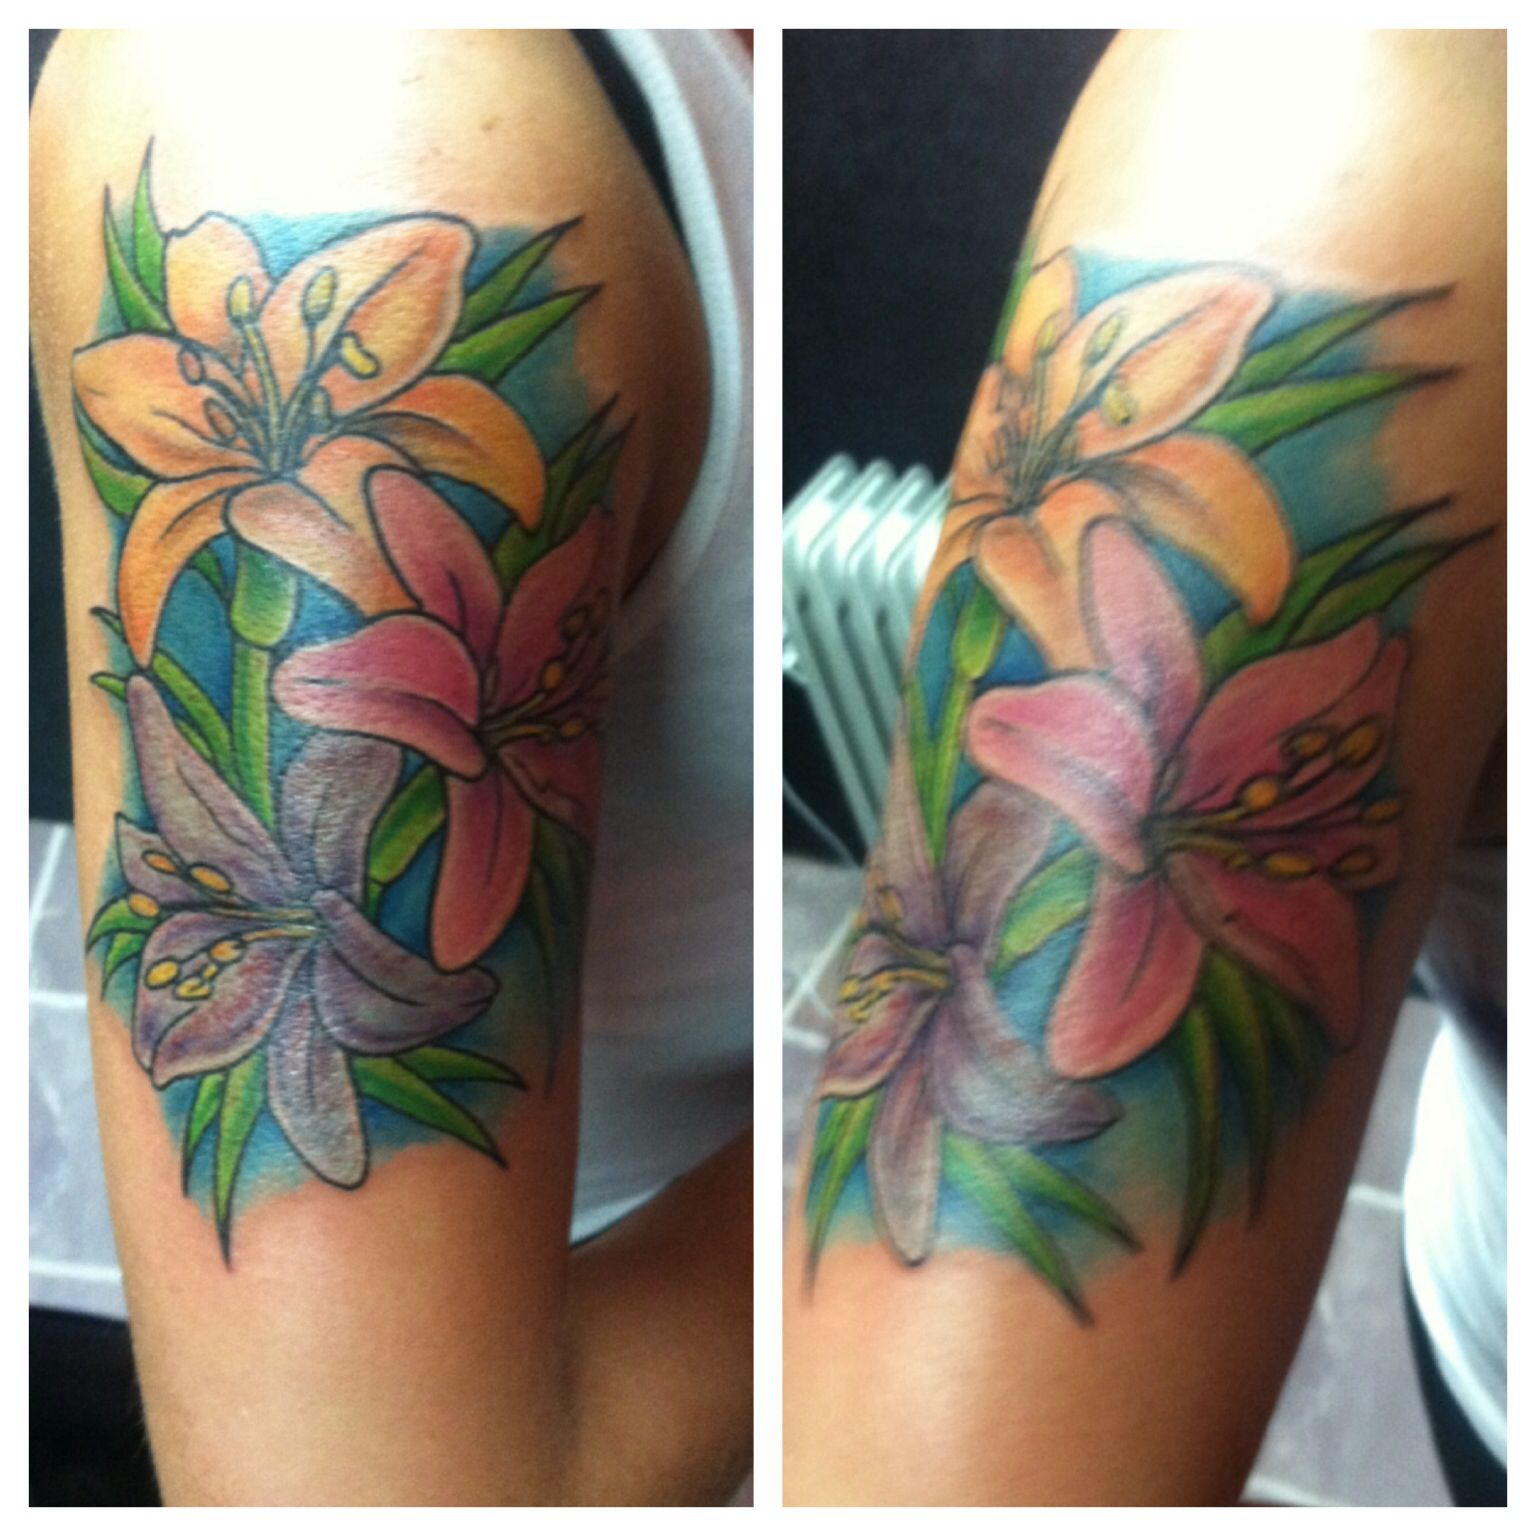 My first color tattoo. Tiger Lilies & star gazers to